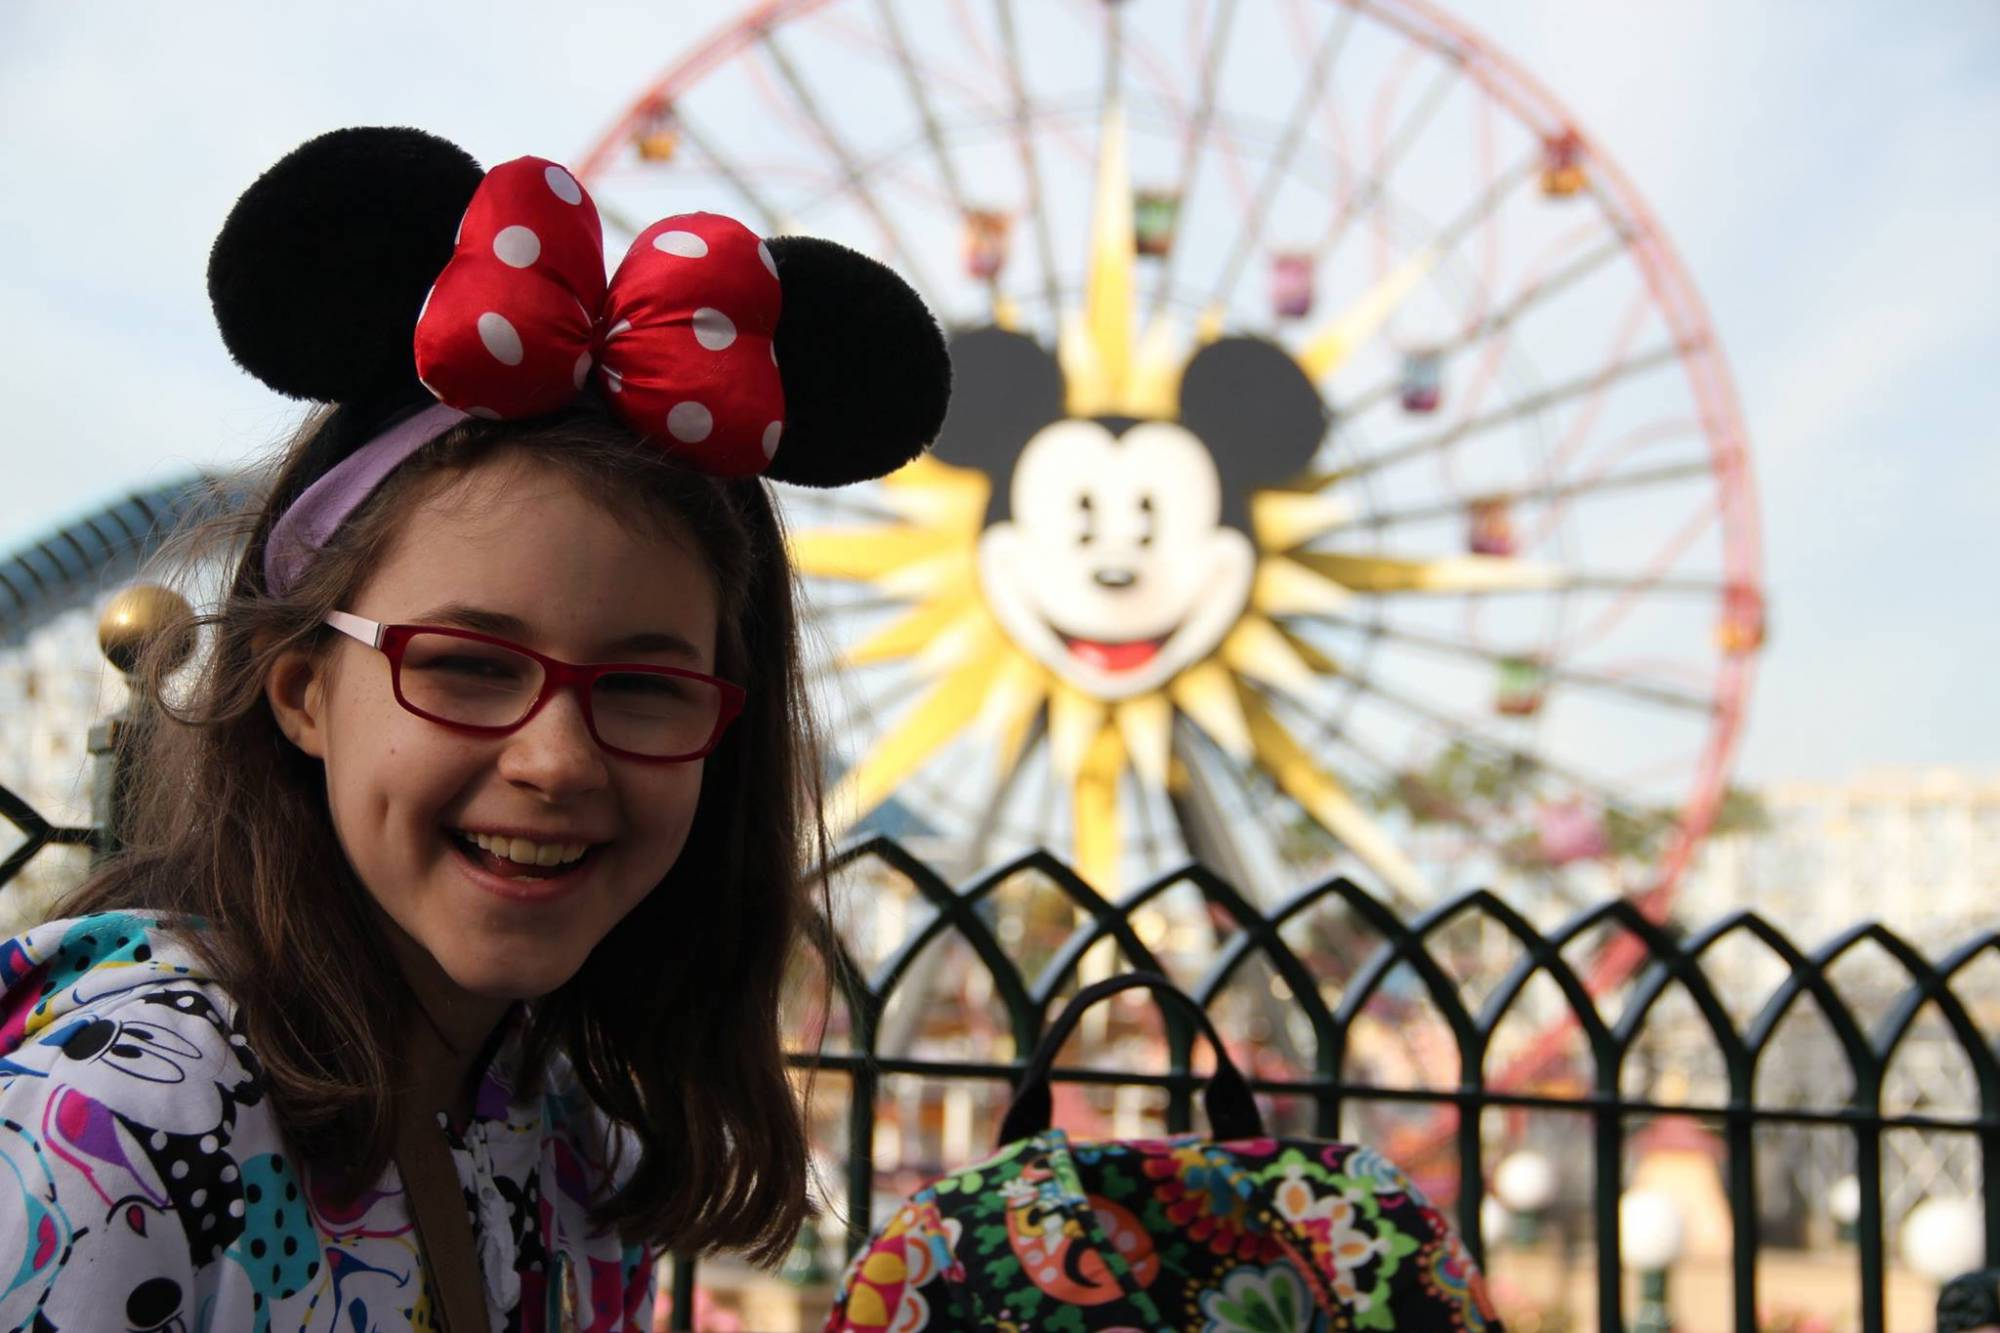 Eight things kids will like about Disneyland, by 10-year-old Abby Wear |PassPorter.com